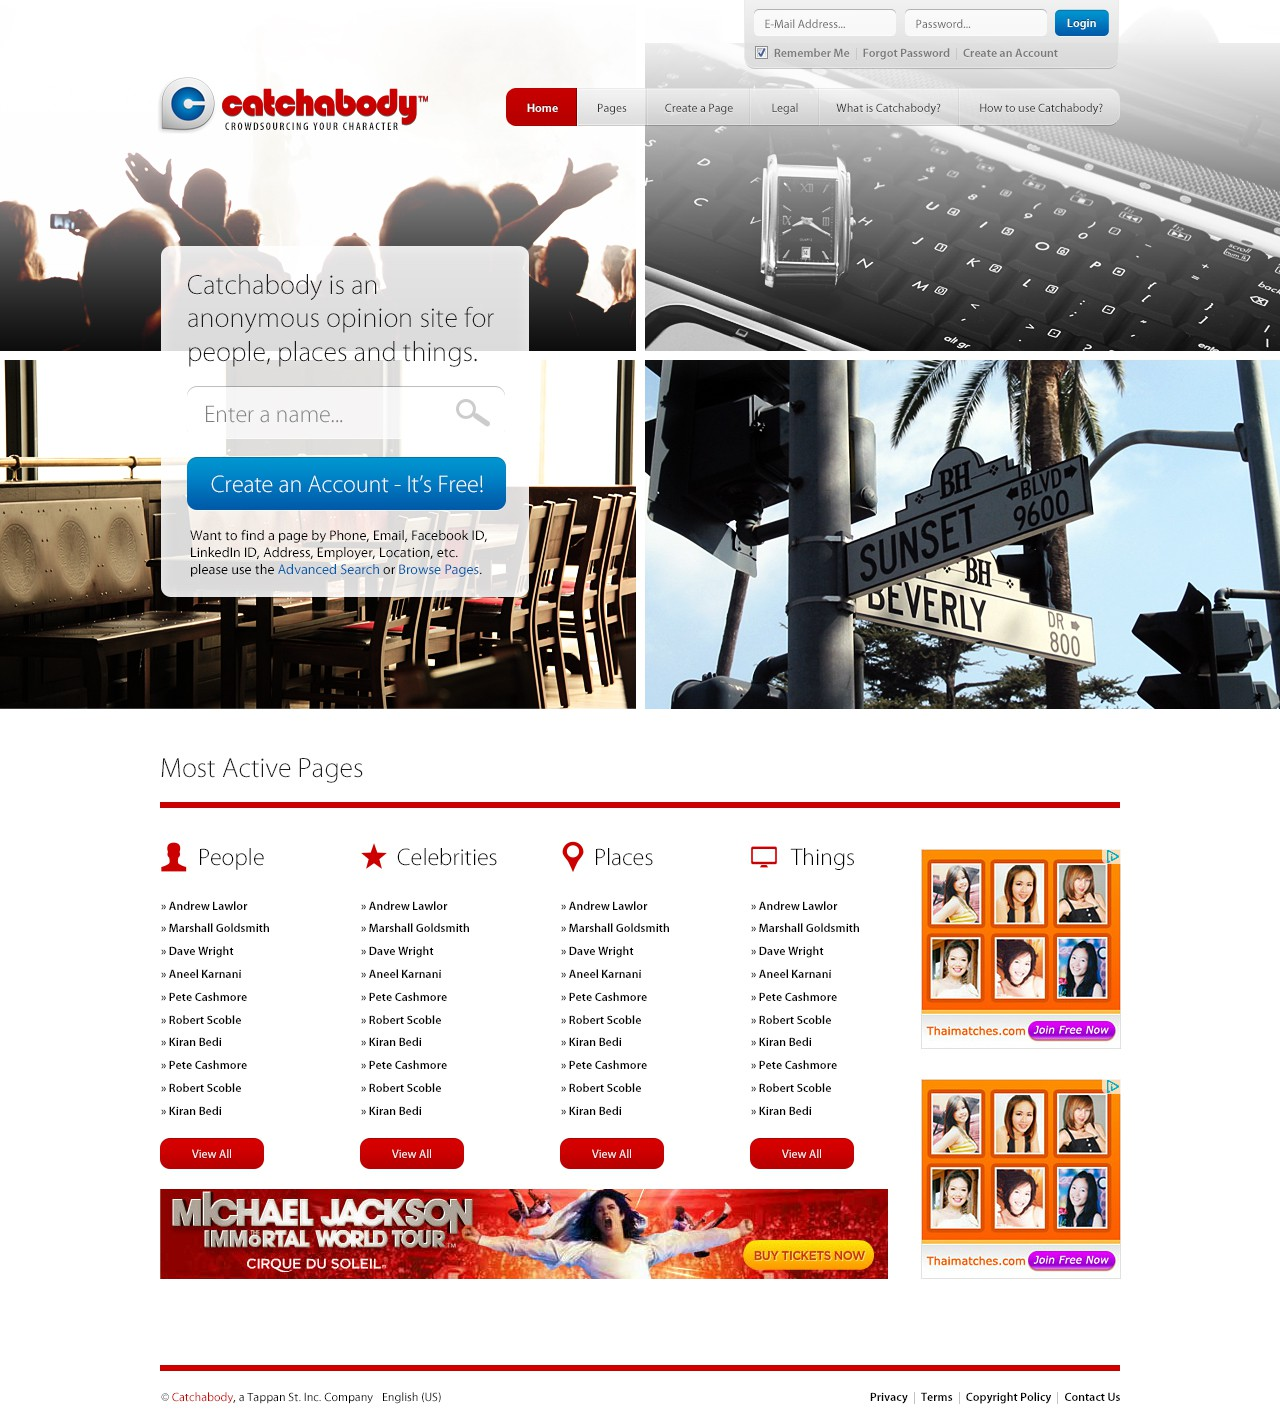 website design for Catchabody